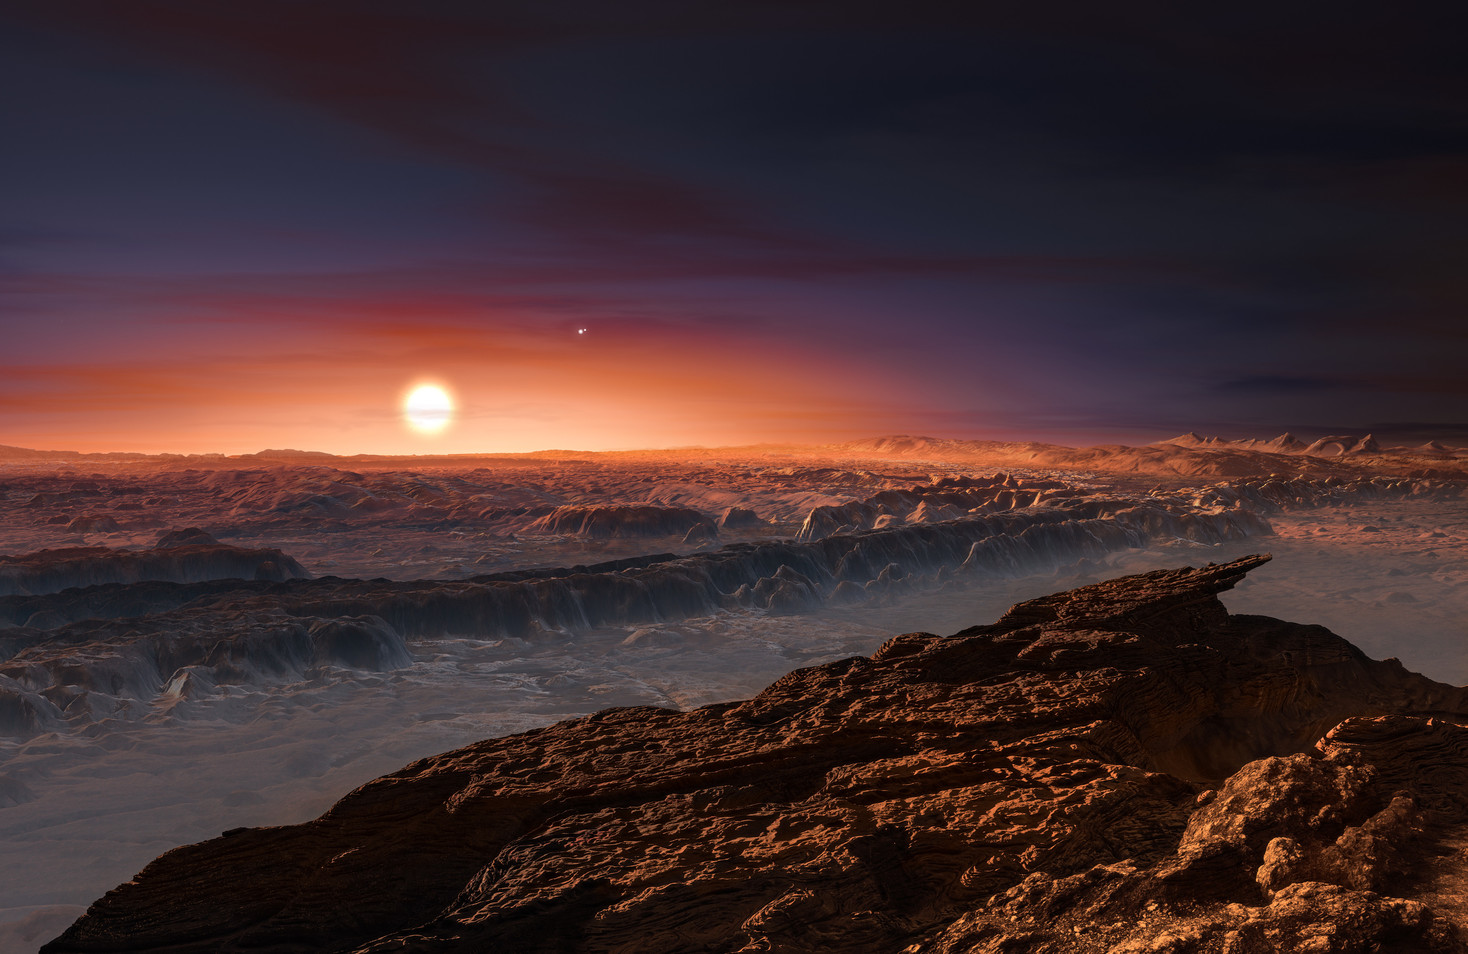 An artist's impression shows a view of the surface of the planet Proxima b orbiting the red dwarf star Proxima Centauri. The double star Alpha Centauri AB appears to the upper-right of Proxima itself. – Image Credit: ESO/M. Kornmesser